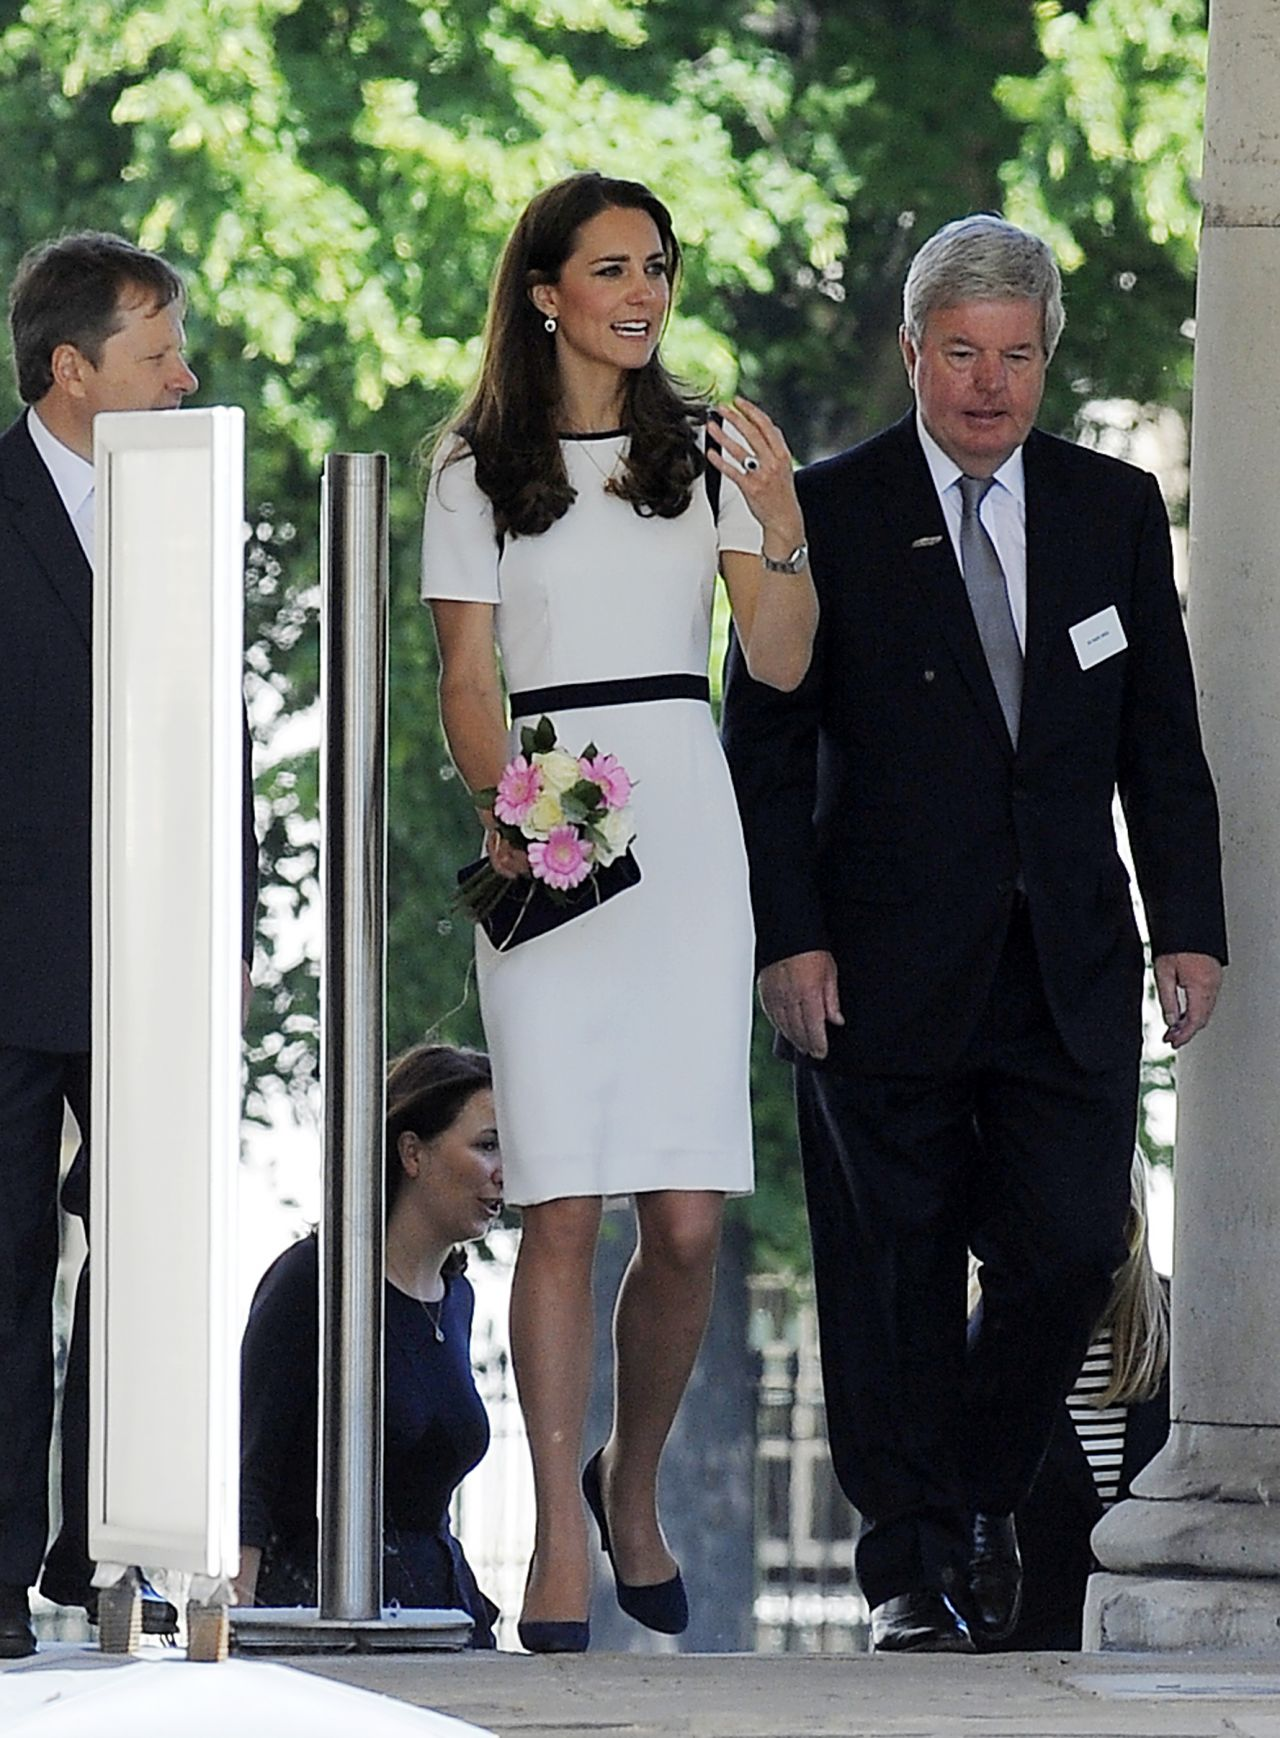 Kate Middleton Wearing Jaeger Dress Visits The National Maritime Museum In Greenwich